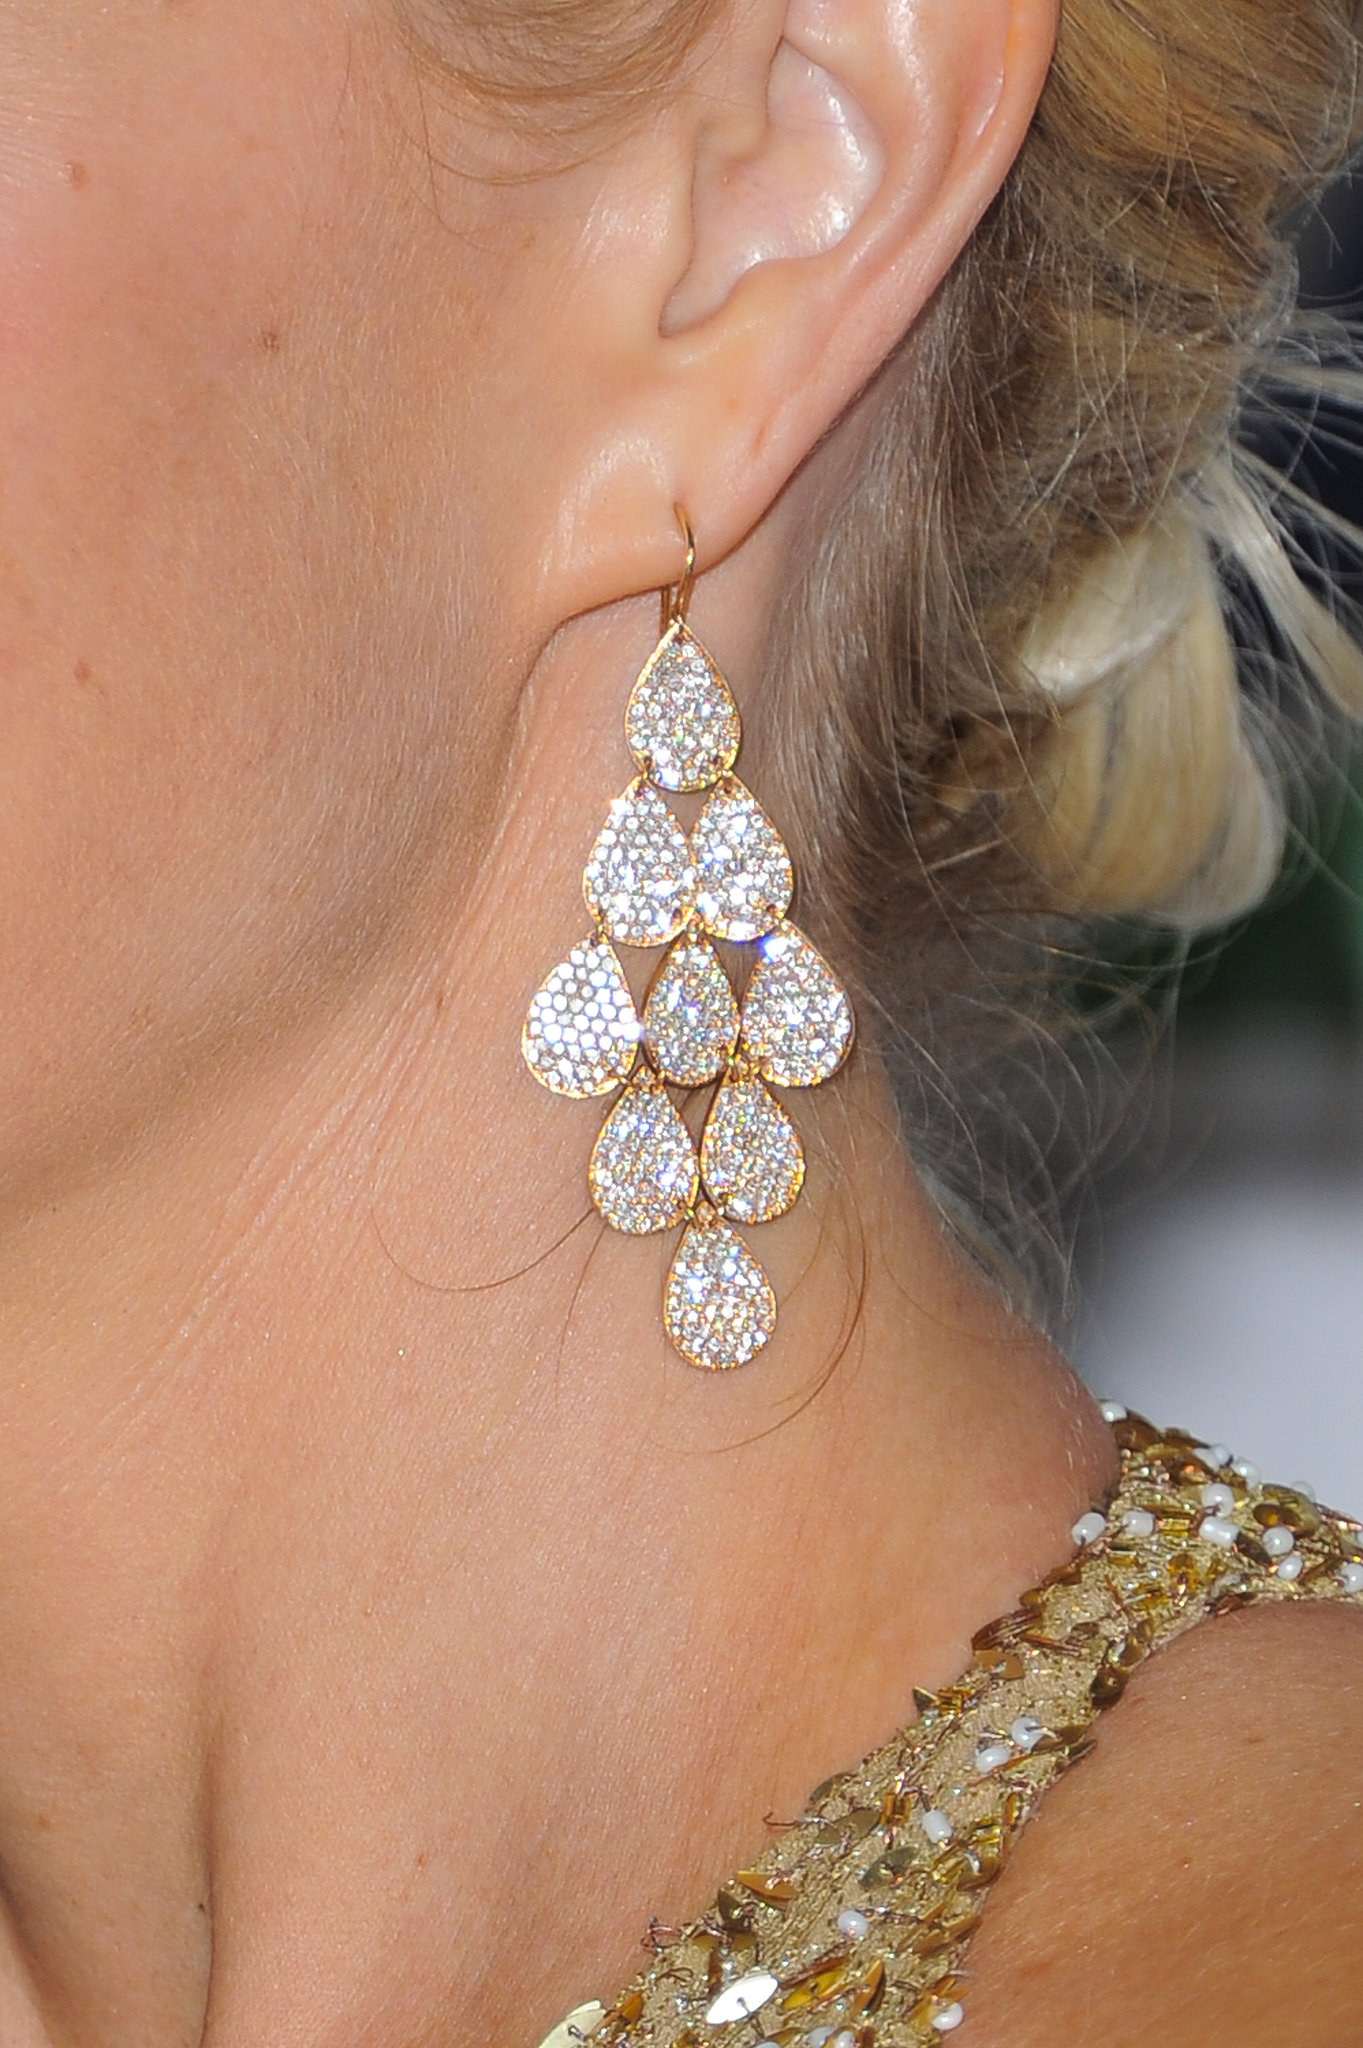 Monica Potter chose a lovely pair of Irene Neuwirth rose gold pavé nine drop earrings.